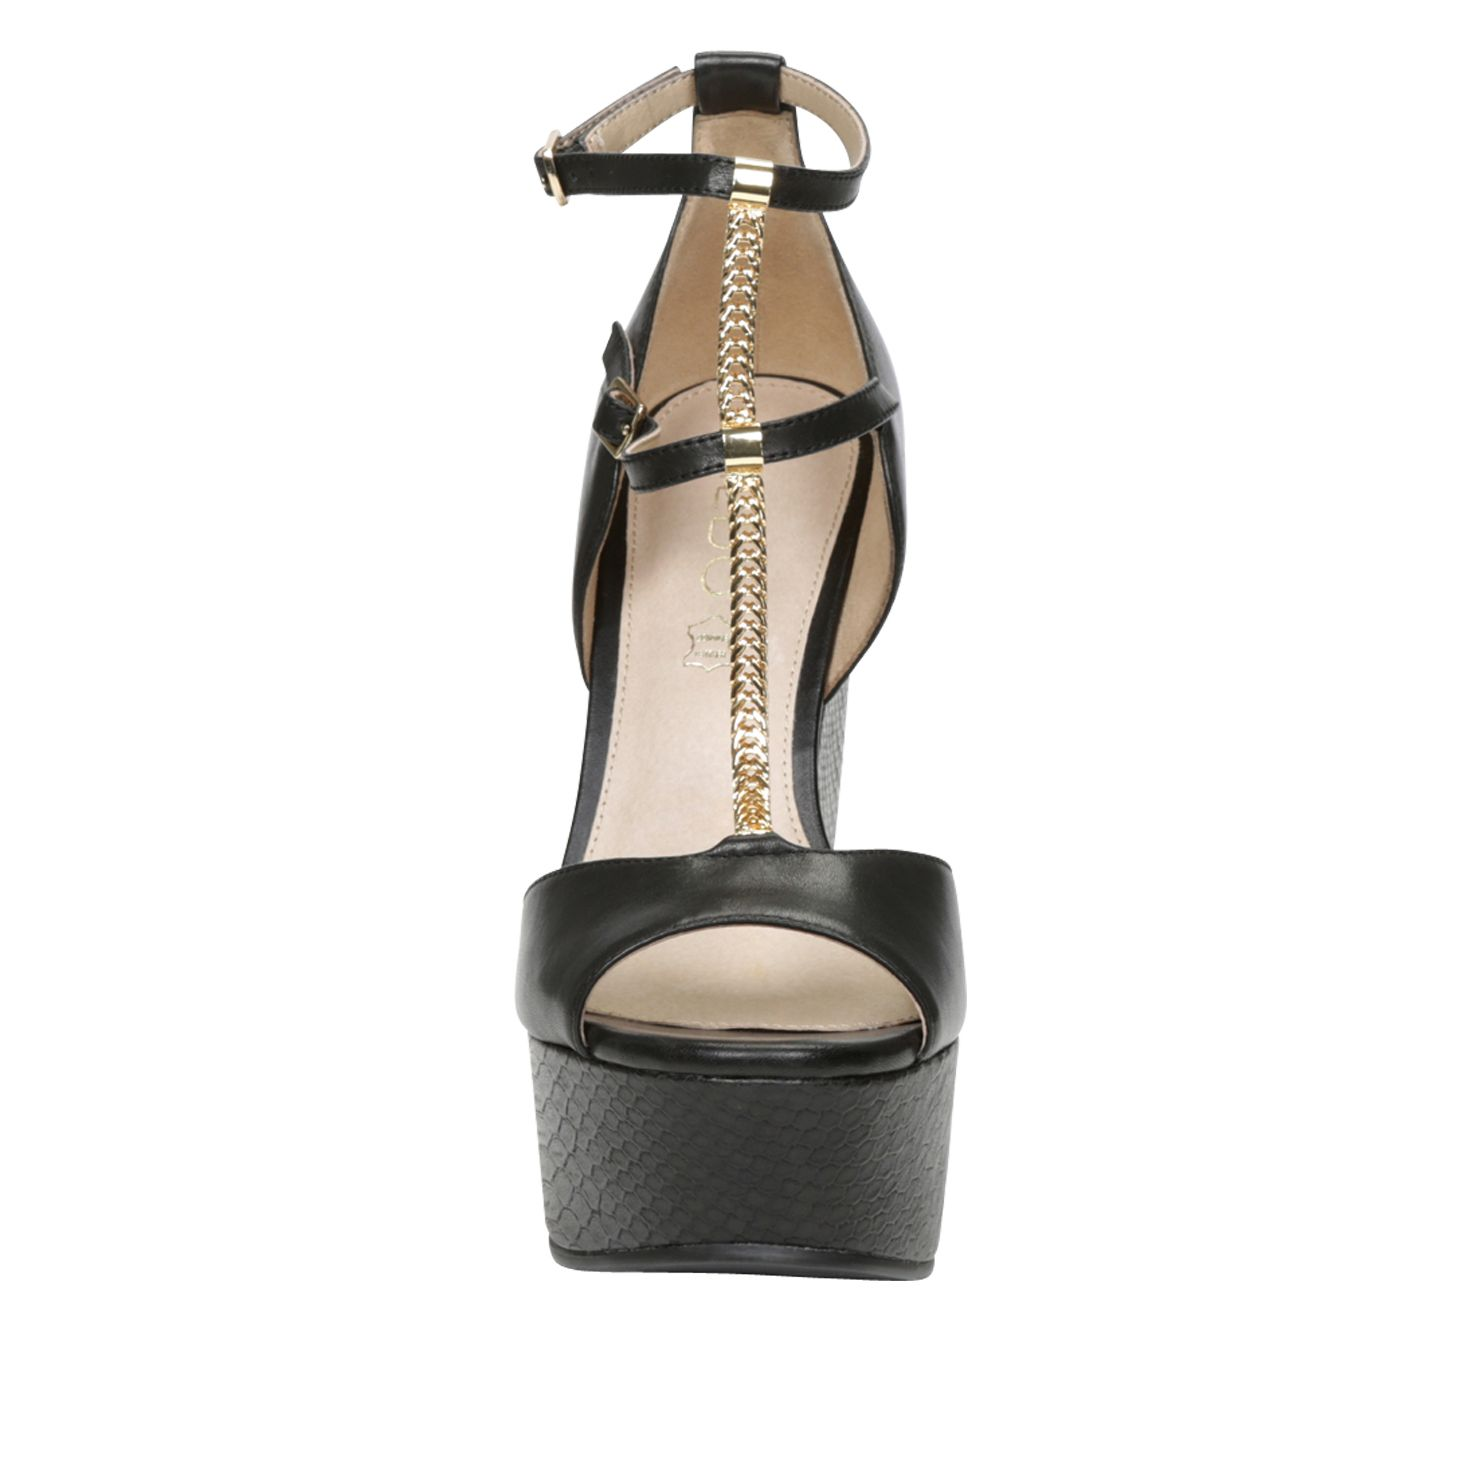 Chiesina peep toe wedge sandals